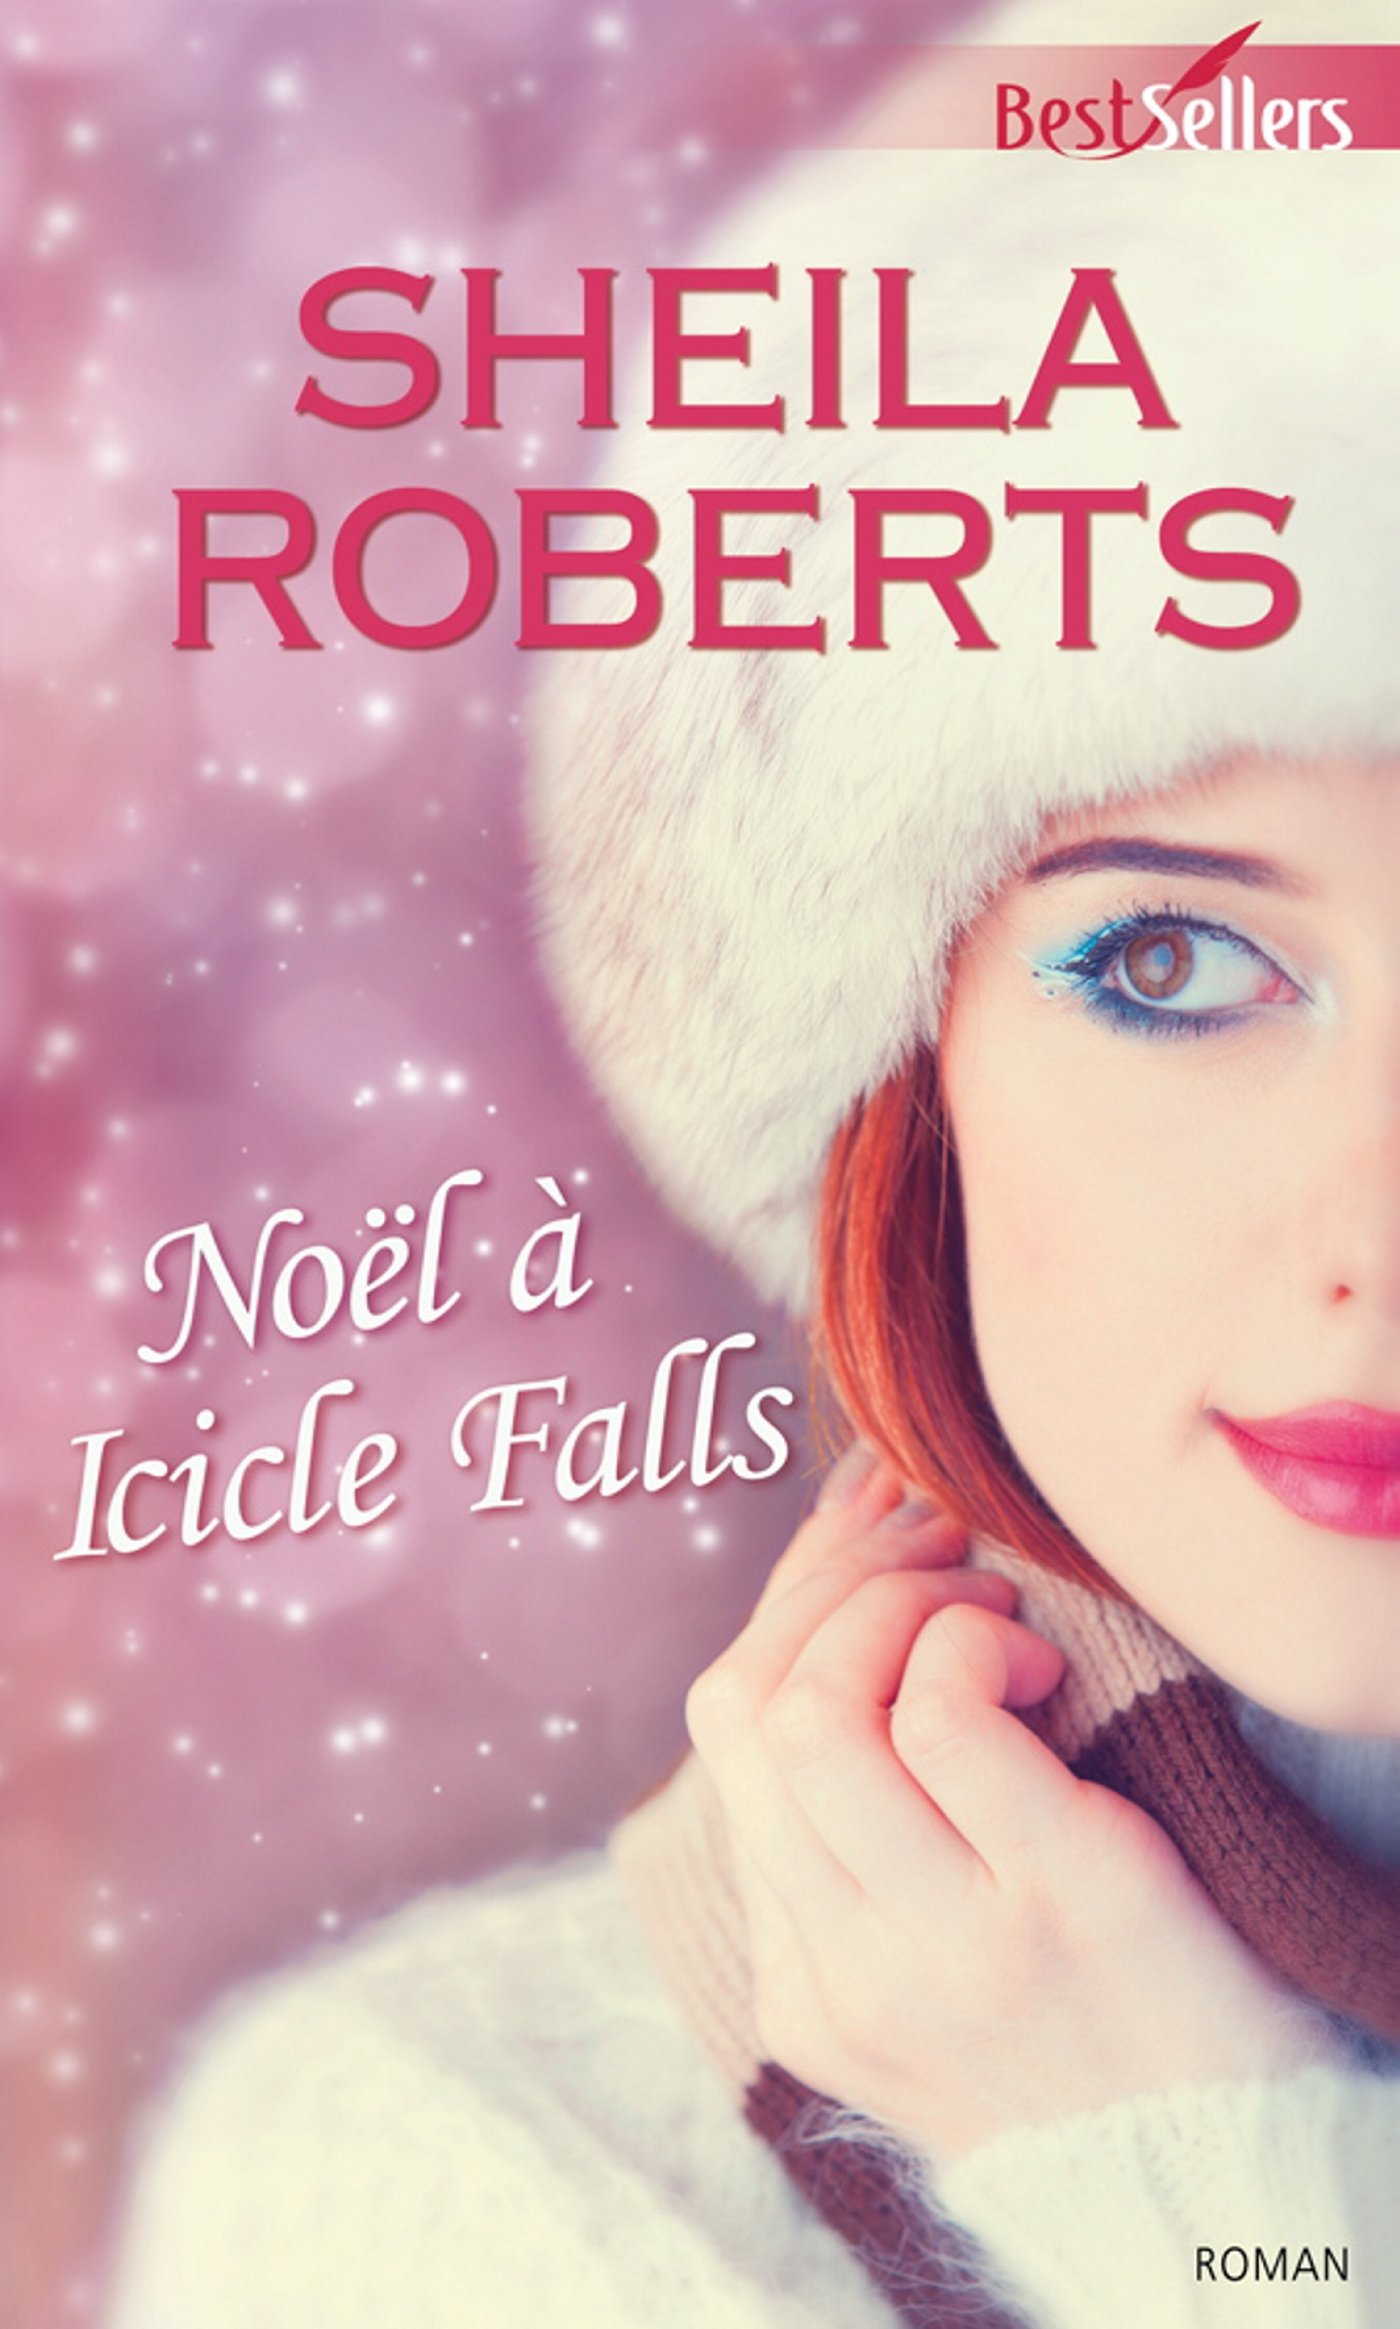 Noël à Icicle Falls - Life in Icicle Falls - Tome 2 : Noël à Icicle Falls de Sheila Roberts 81RKXXlbvzL